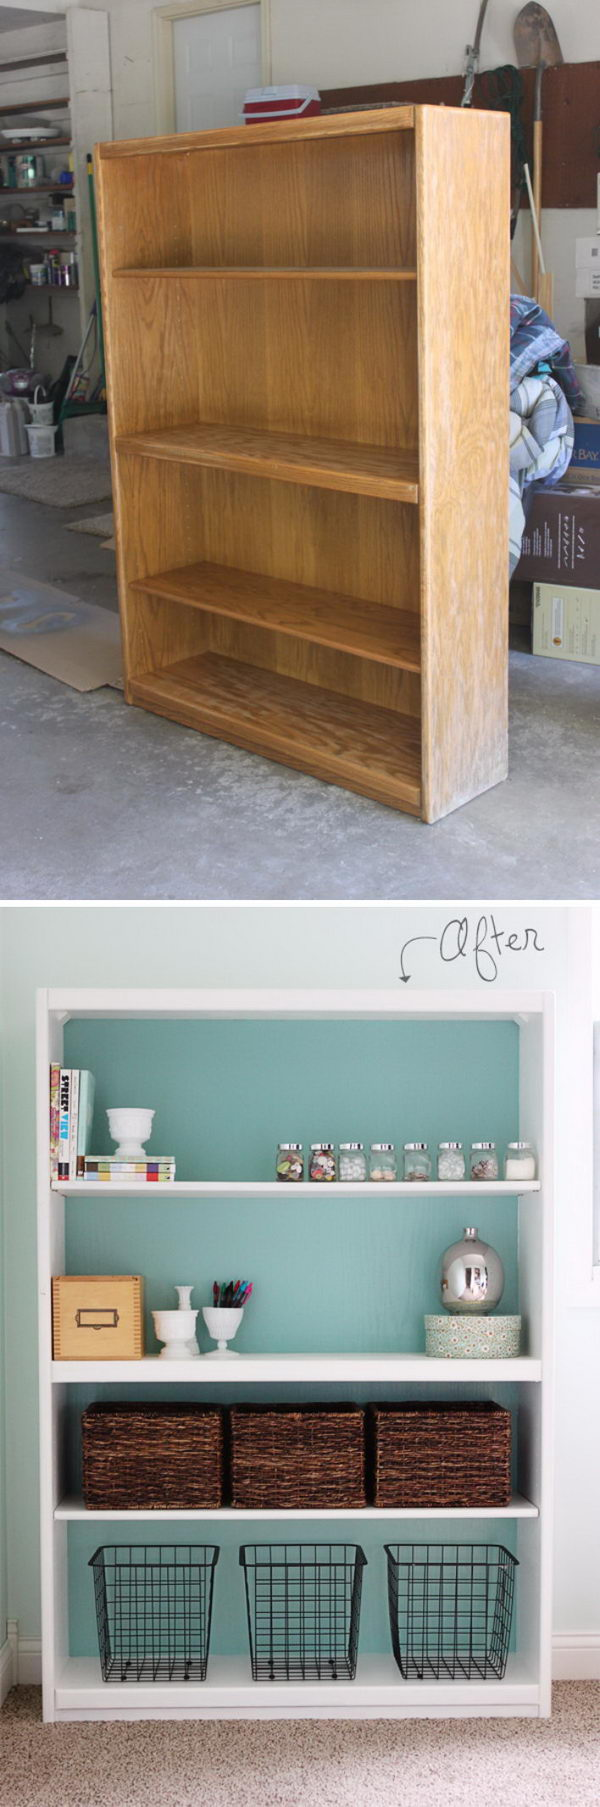 old furniture makeover. Bookcase Makeover With Before And After Old Furniture R